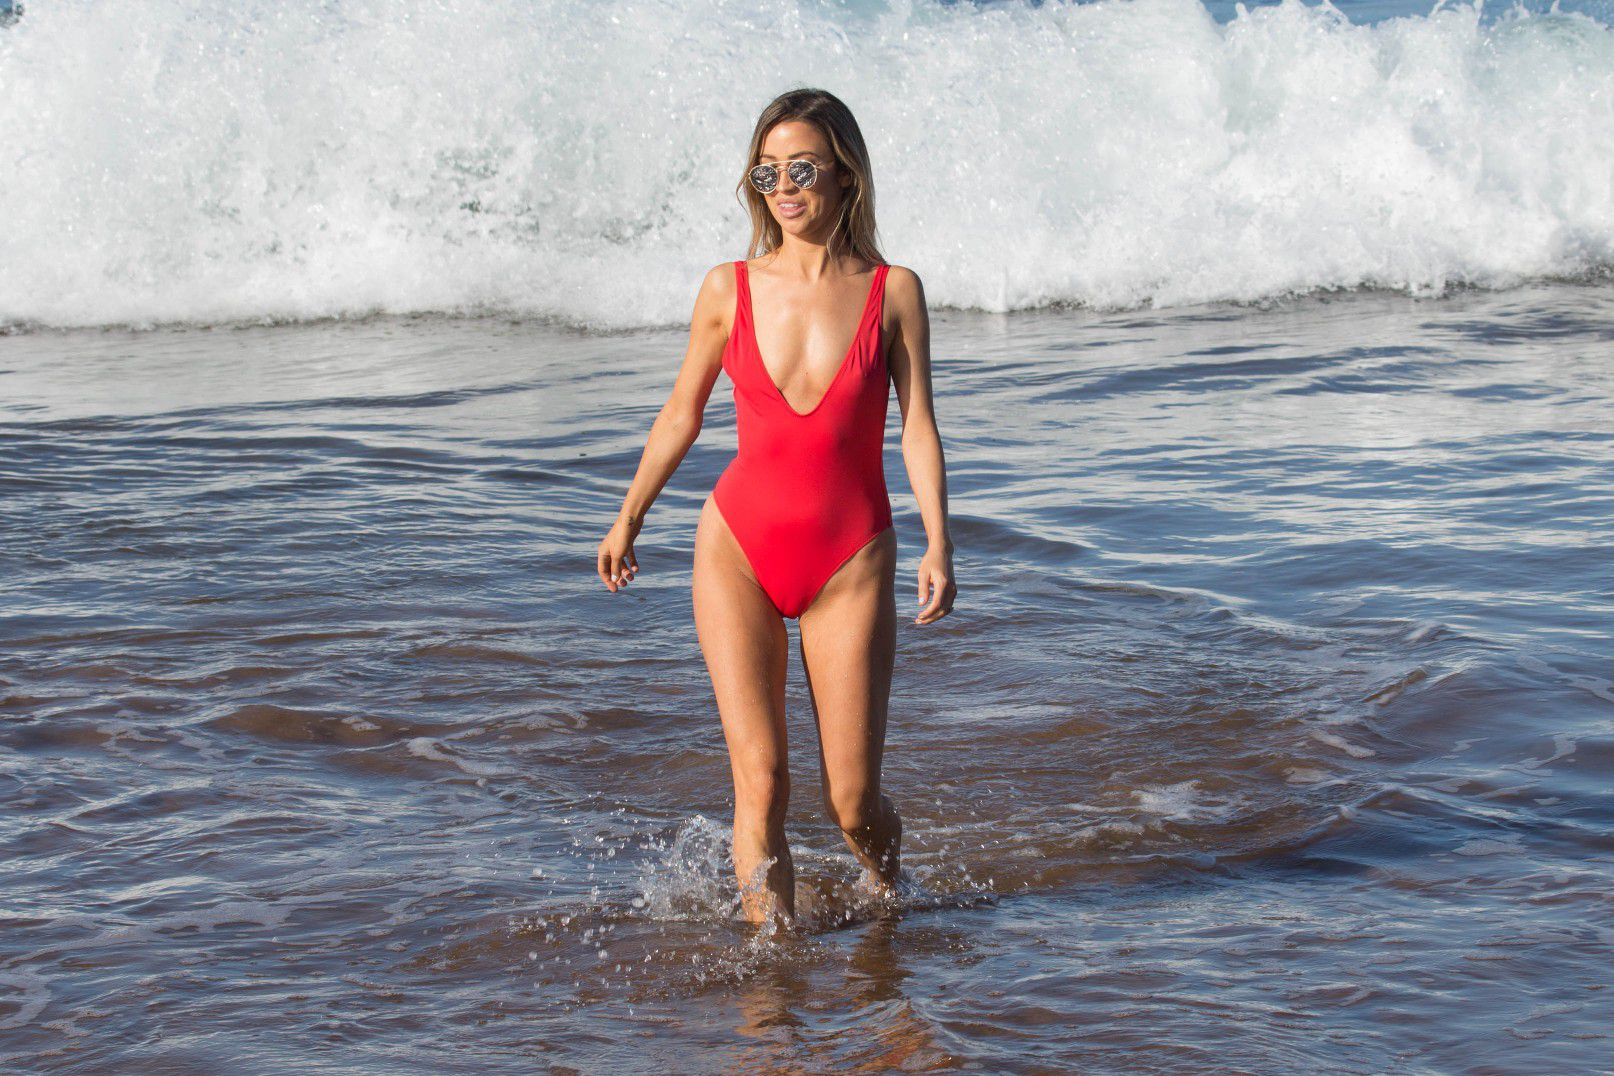 kaitlyn-bristowe-cameltoe-in-red-swimsuit-on-the-beach-in-hawaii-7642